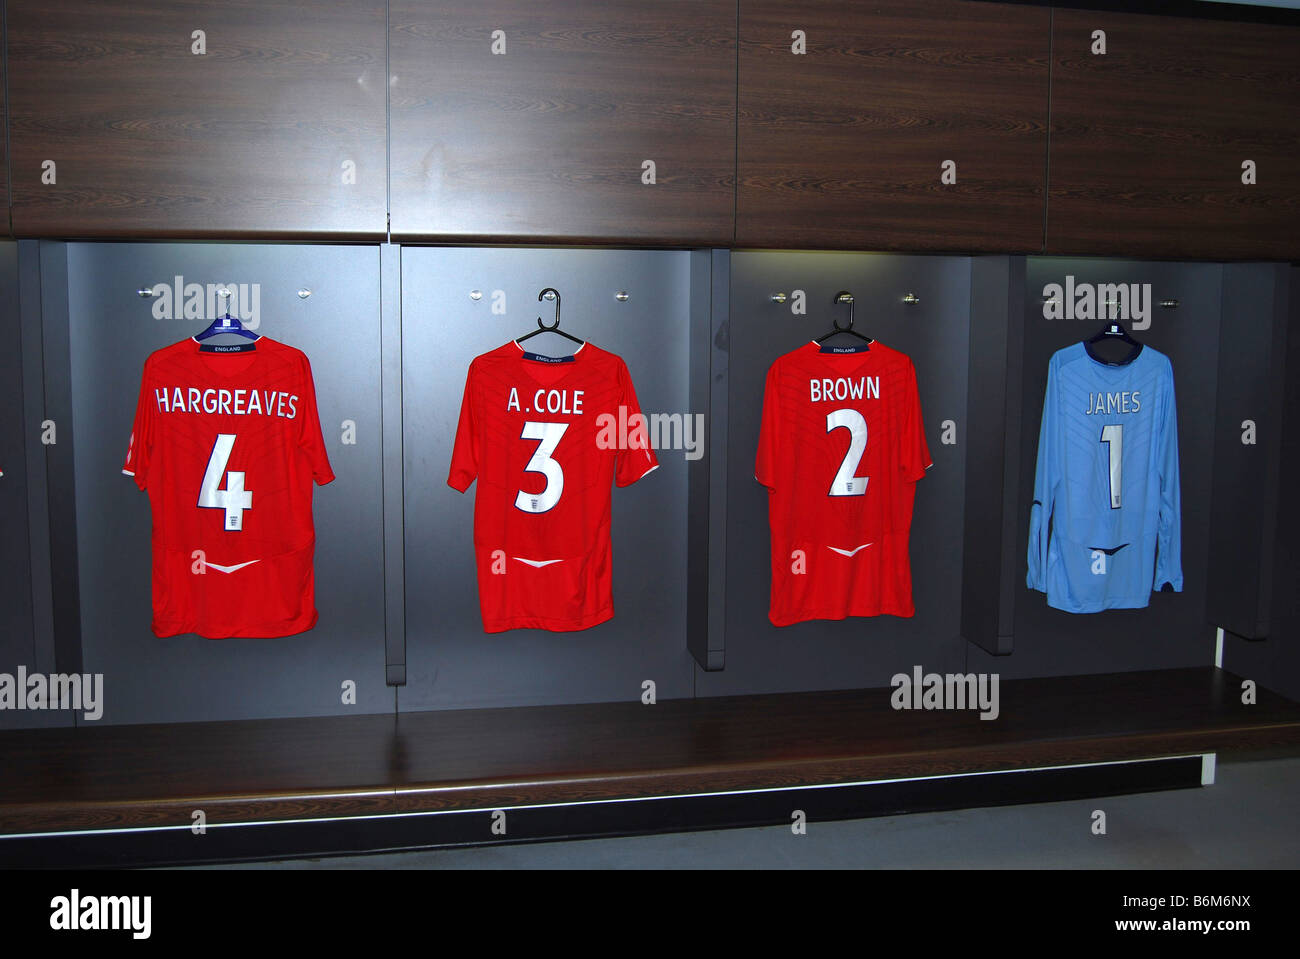 shirts of hargreaves cole brown and james in the new wembley stadium dressing rooms waiting to be worn number 2698 - Stock Image